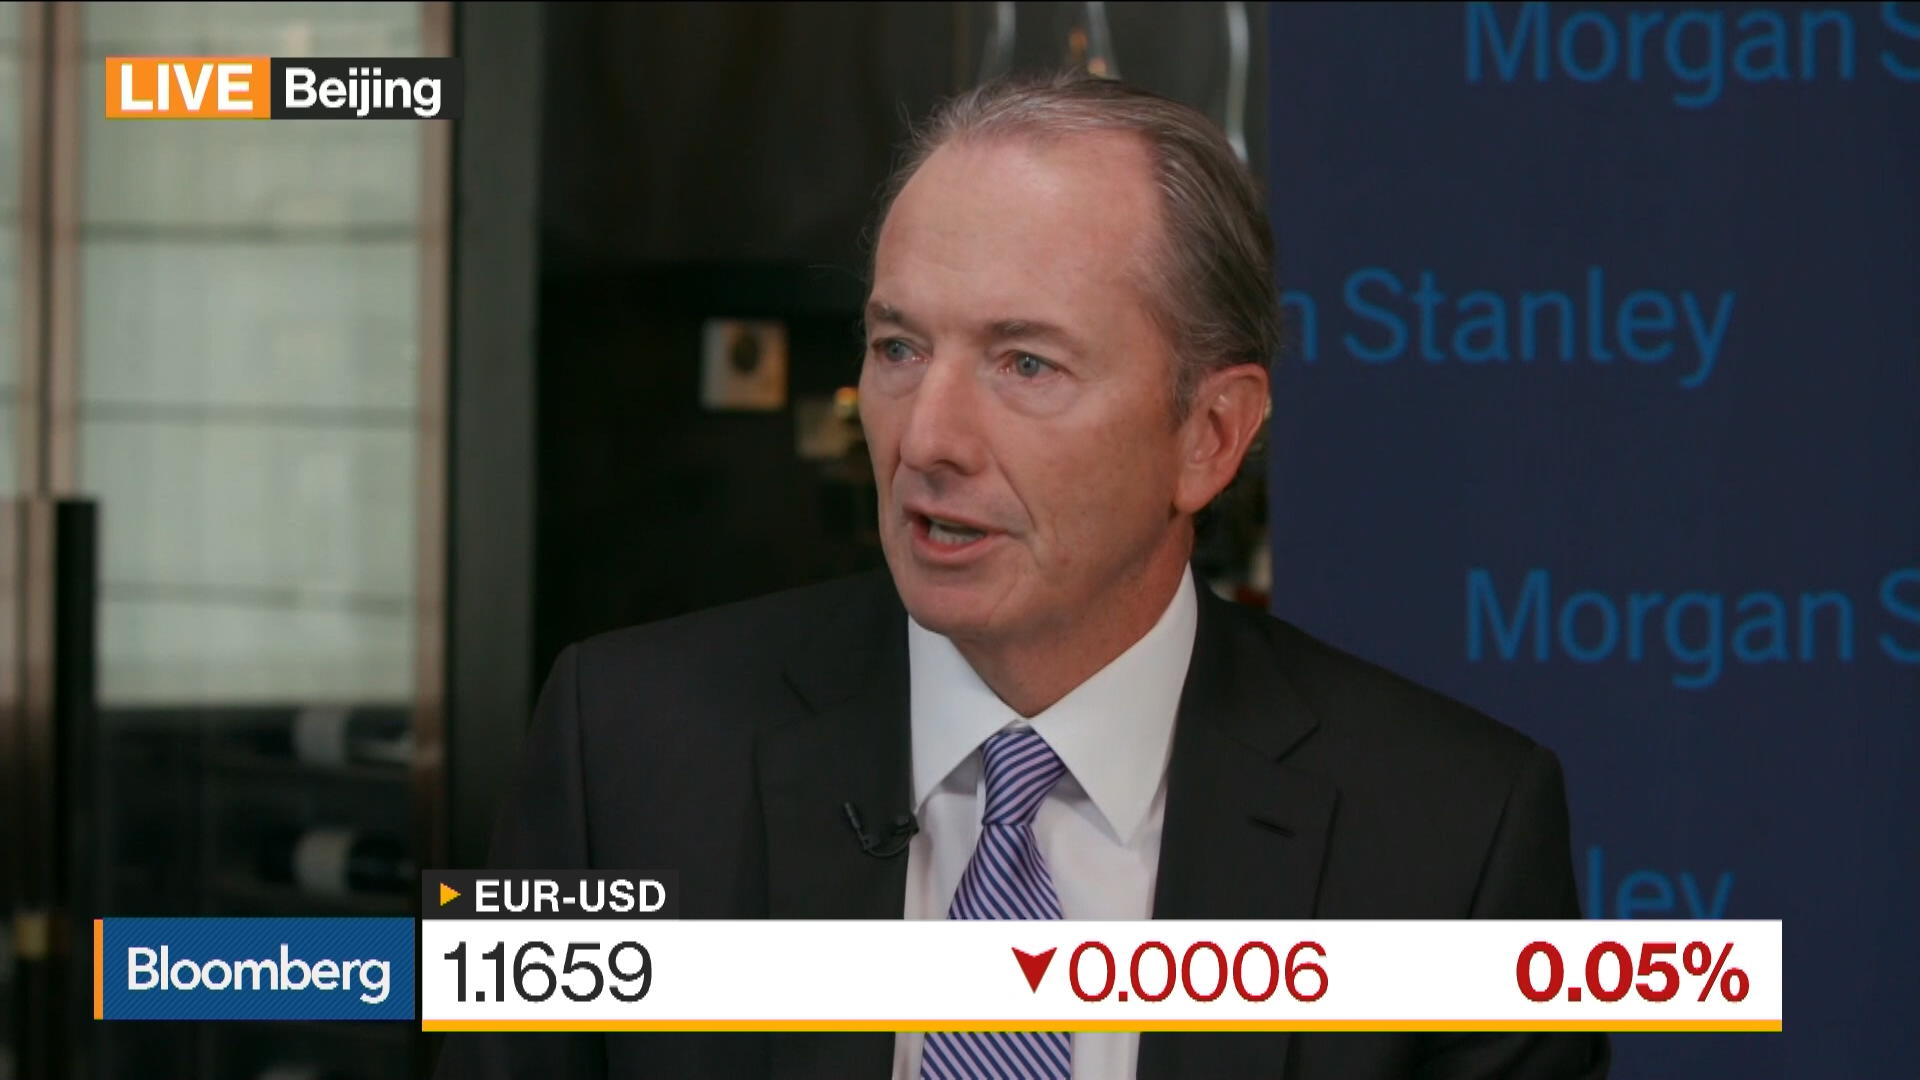 Morgan Stanley S Gorman Says Fed Wants Normal Rate Environment Bloomberg